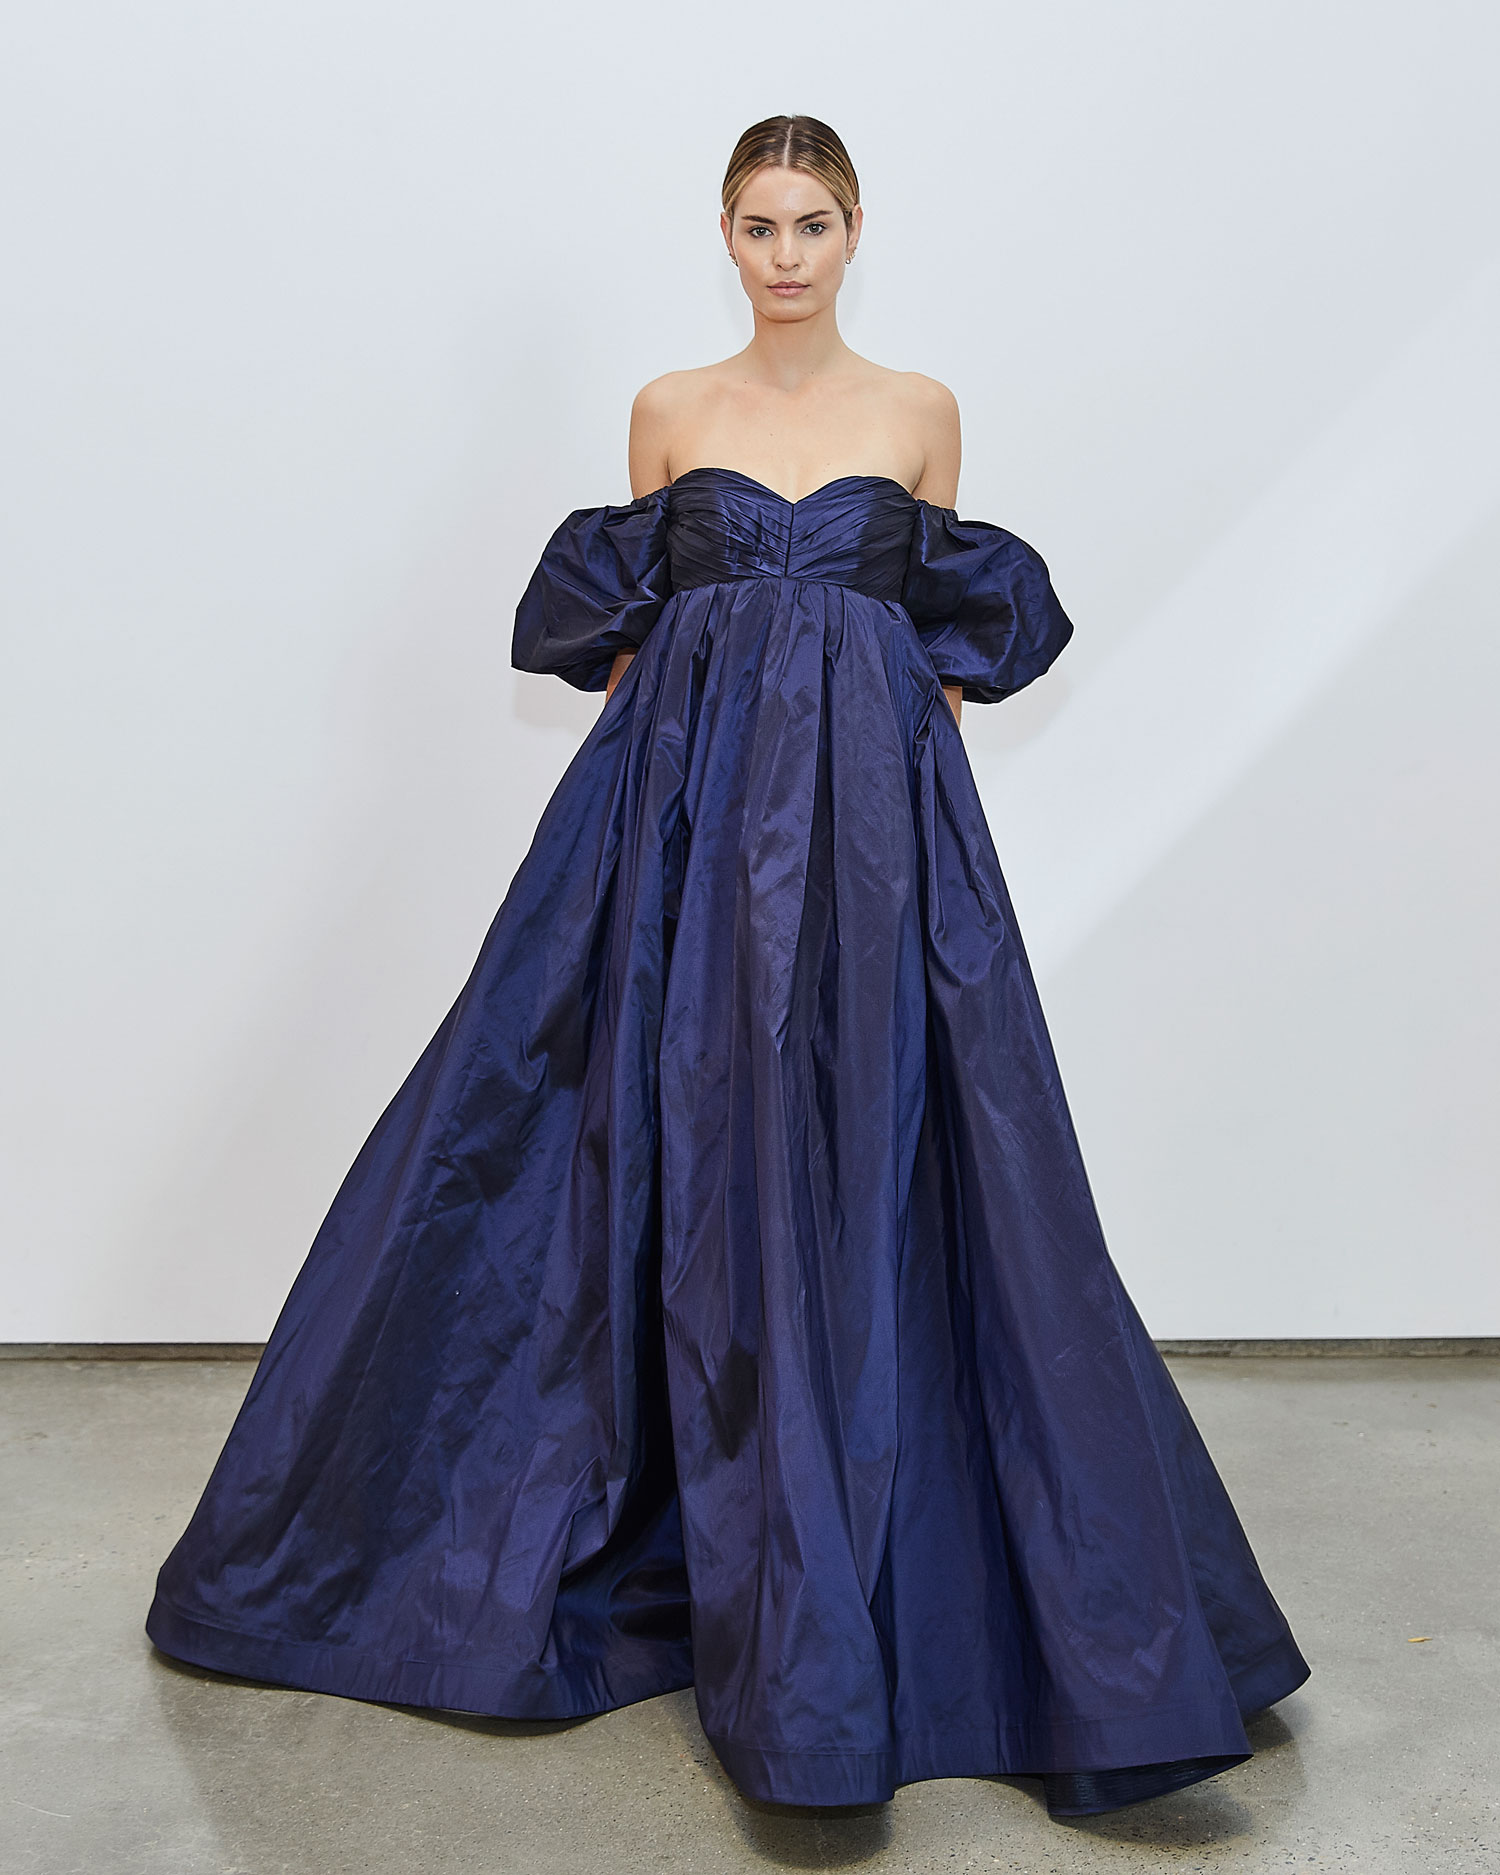 Francesca Miranda Fall 2020 bridal collection Eli wedding dress navy ball gown off shoulder puffy sleeves